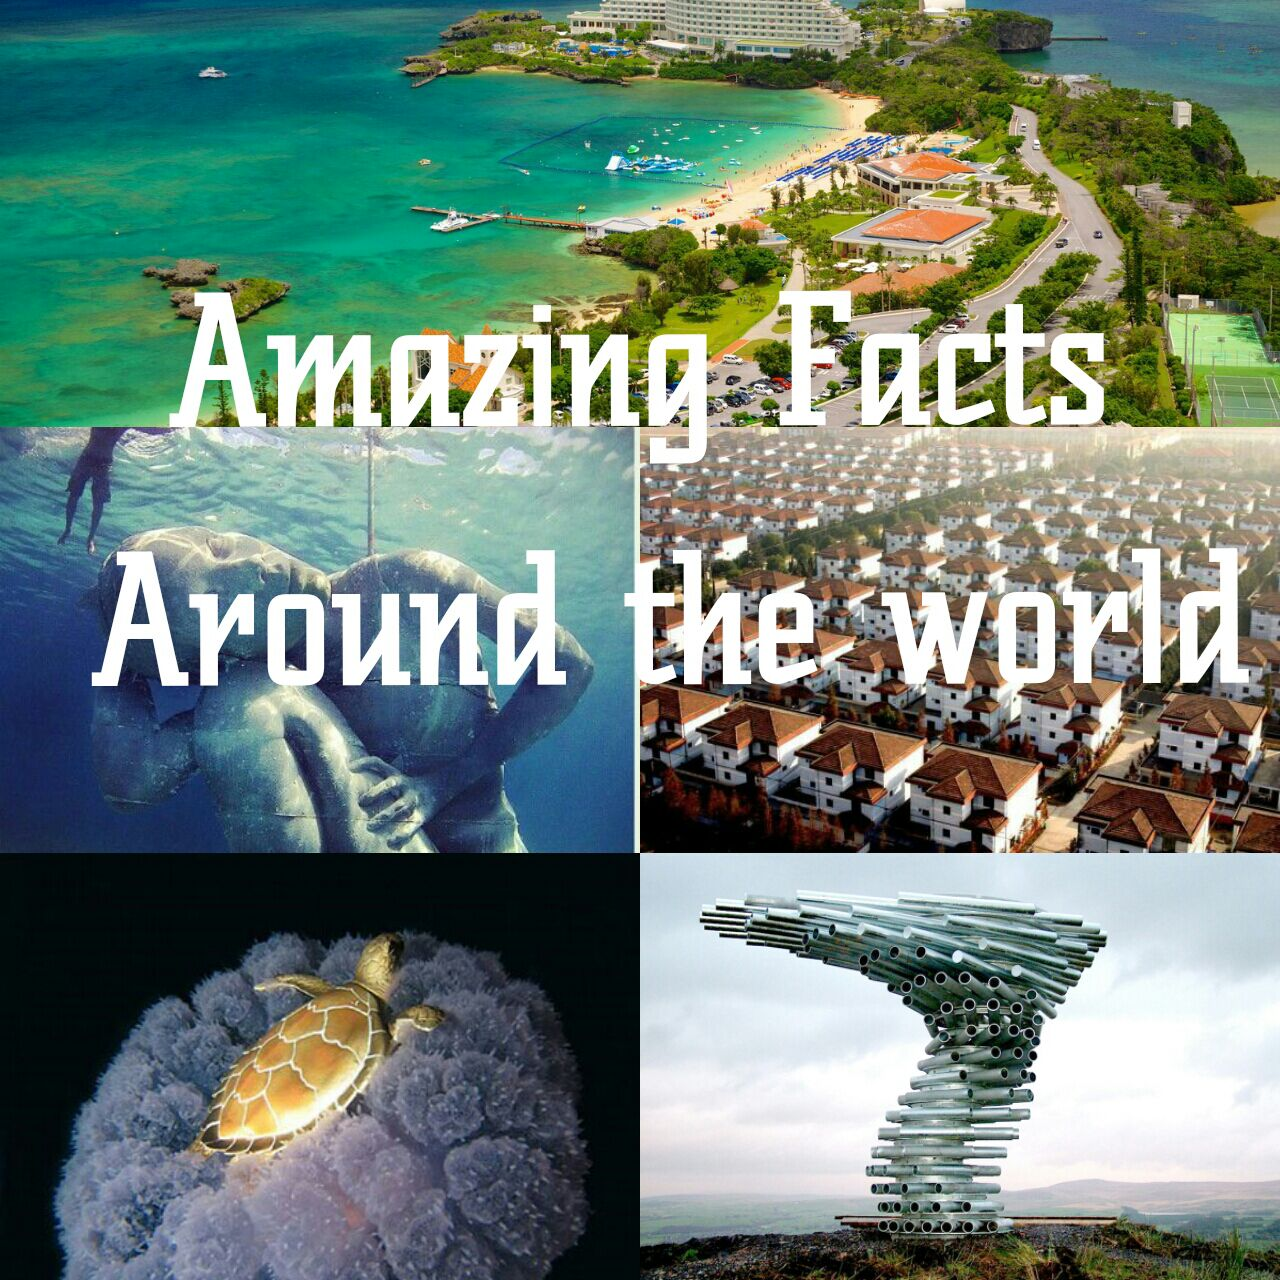 13+ Amazing Things Around The World That You Won't Believe are True